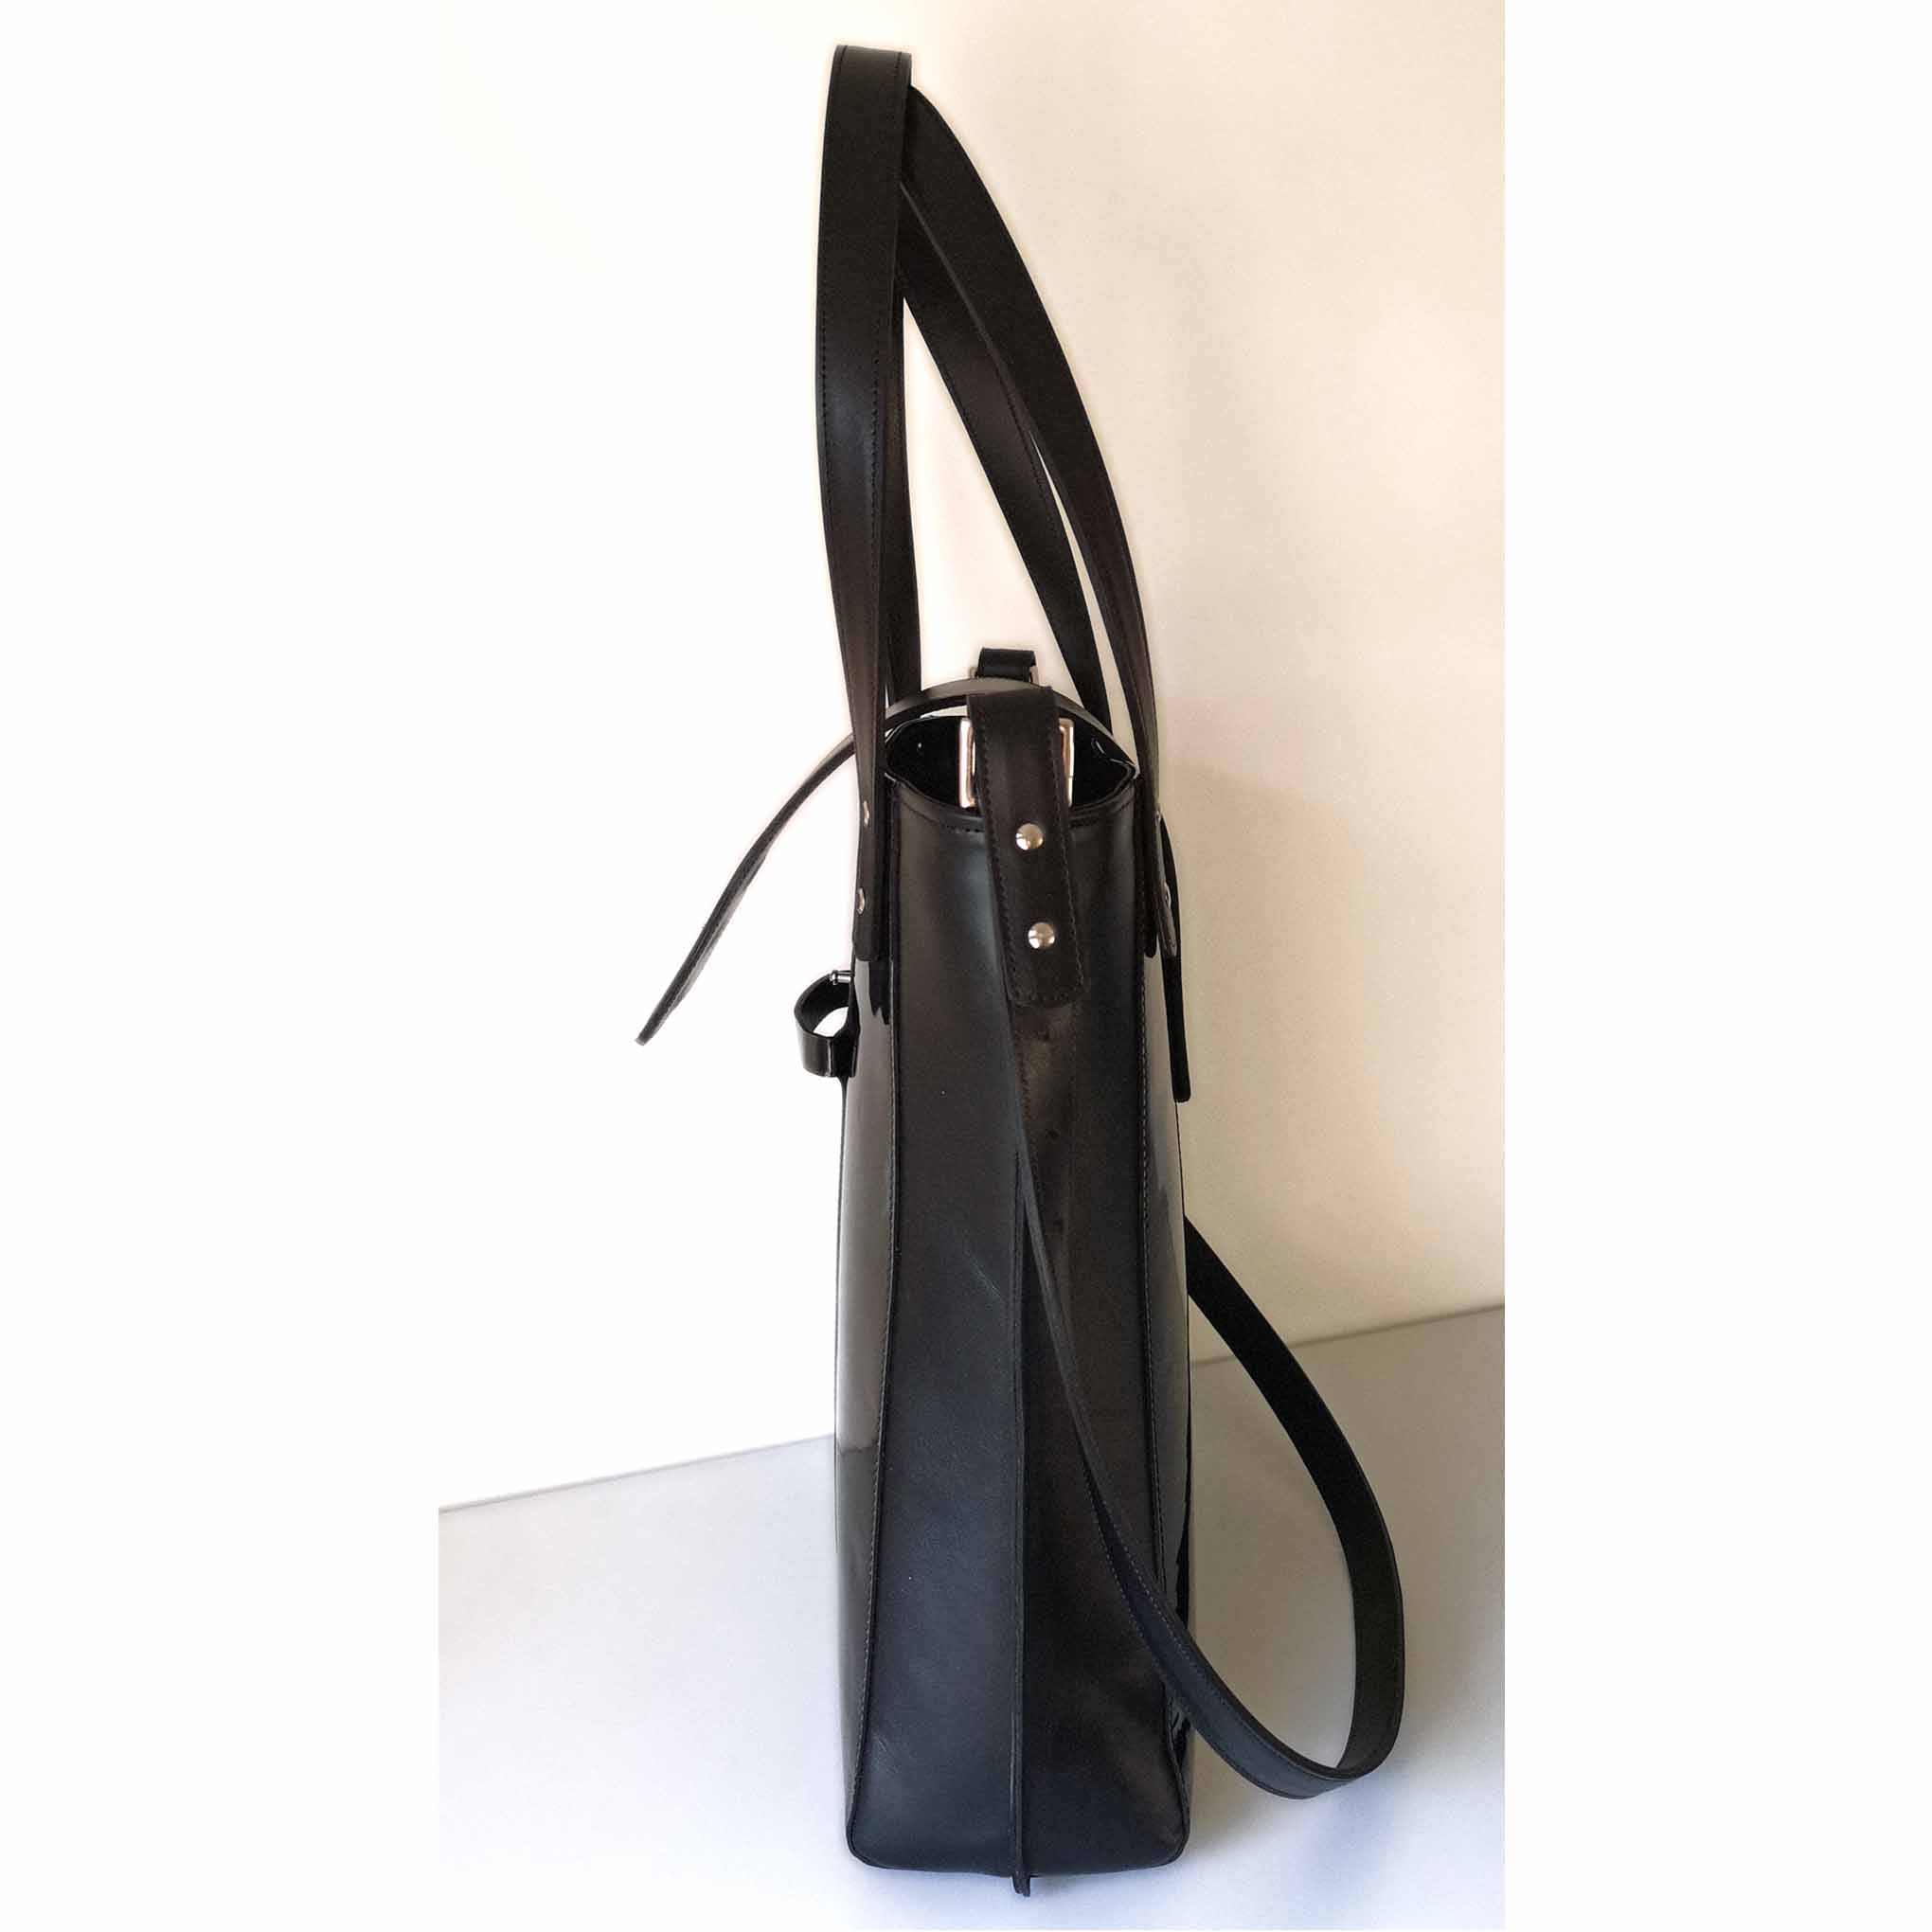 Patent black Tote Bag  - The Kathryn bag